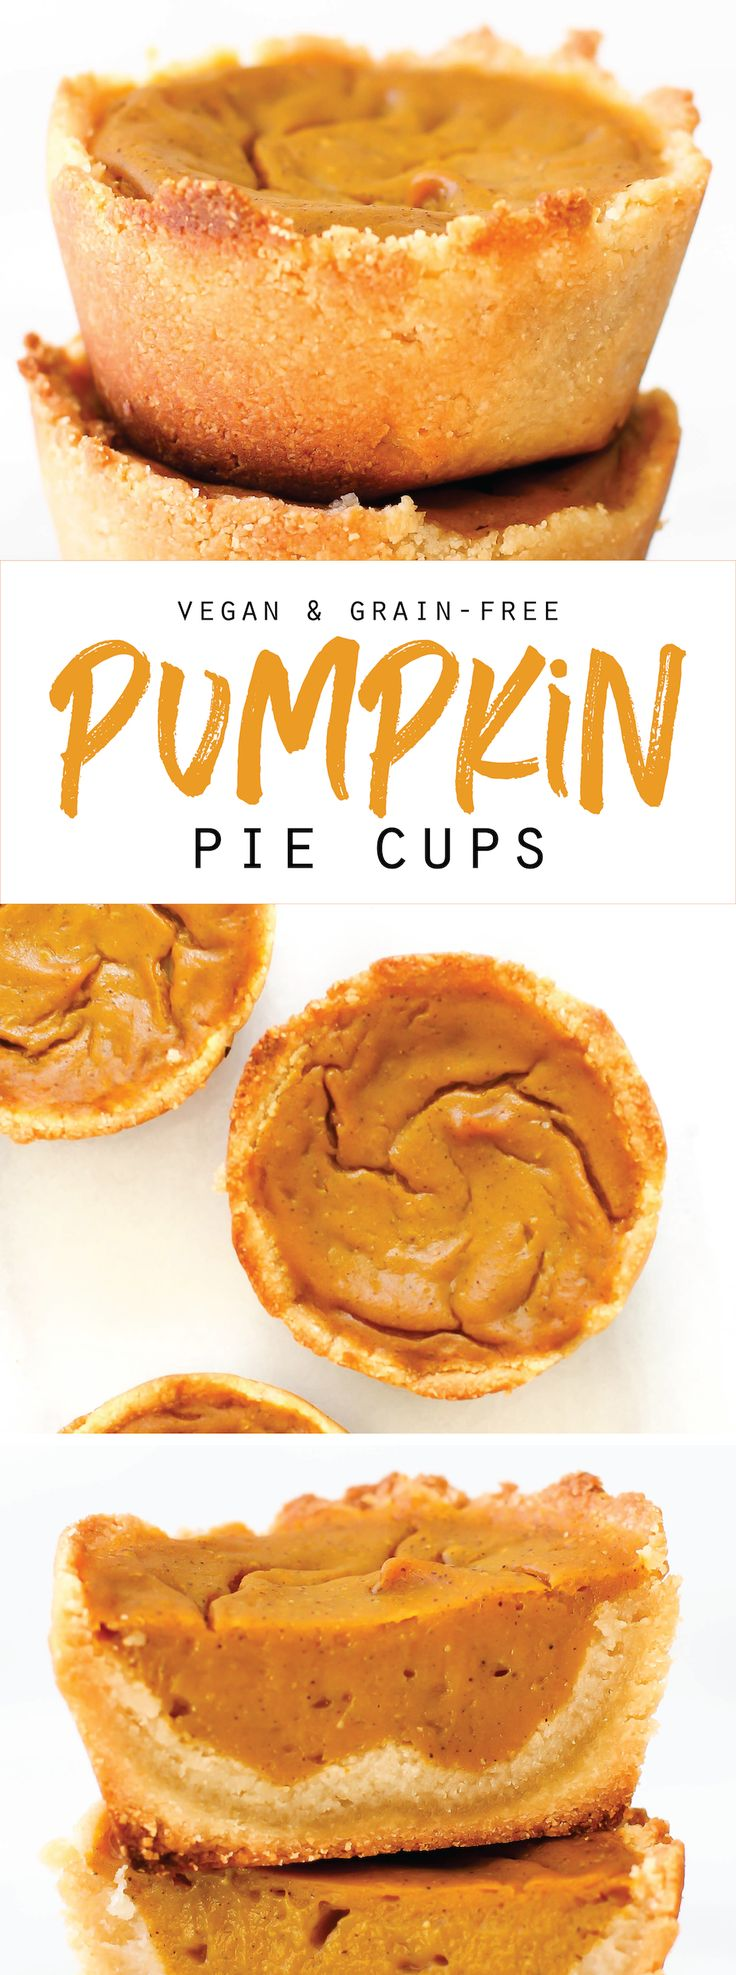 These easy healthy Vegan & Grain-Free Pumpkin Pie Cups are just like your favorite fall or Thanksgiving dessert but in a smaller, 6 ingredient form! via @Natalie | Feasting on Fruit